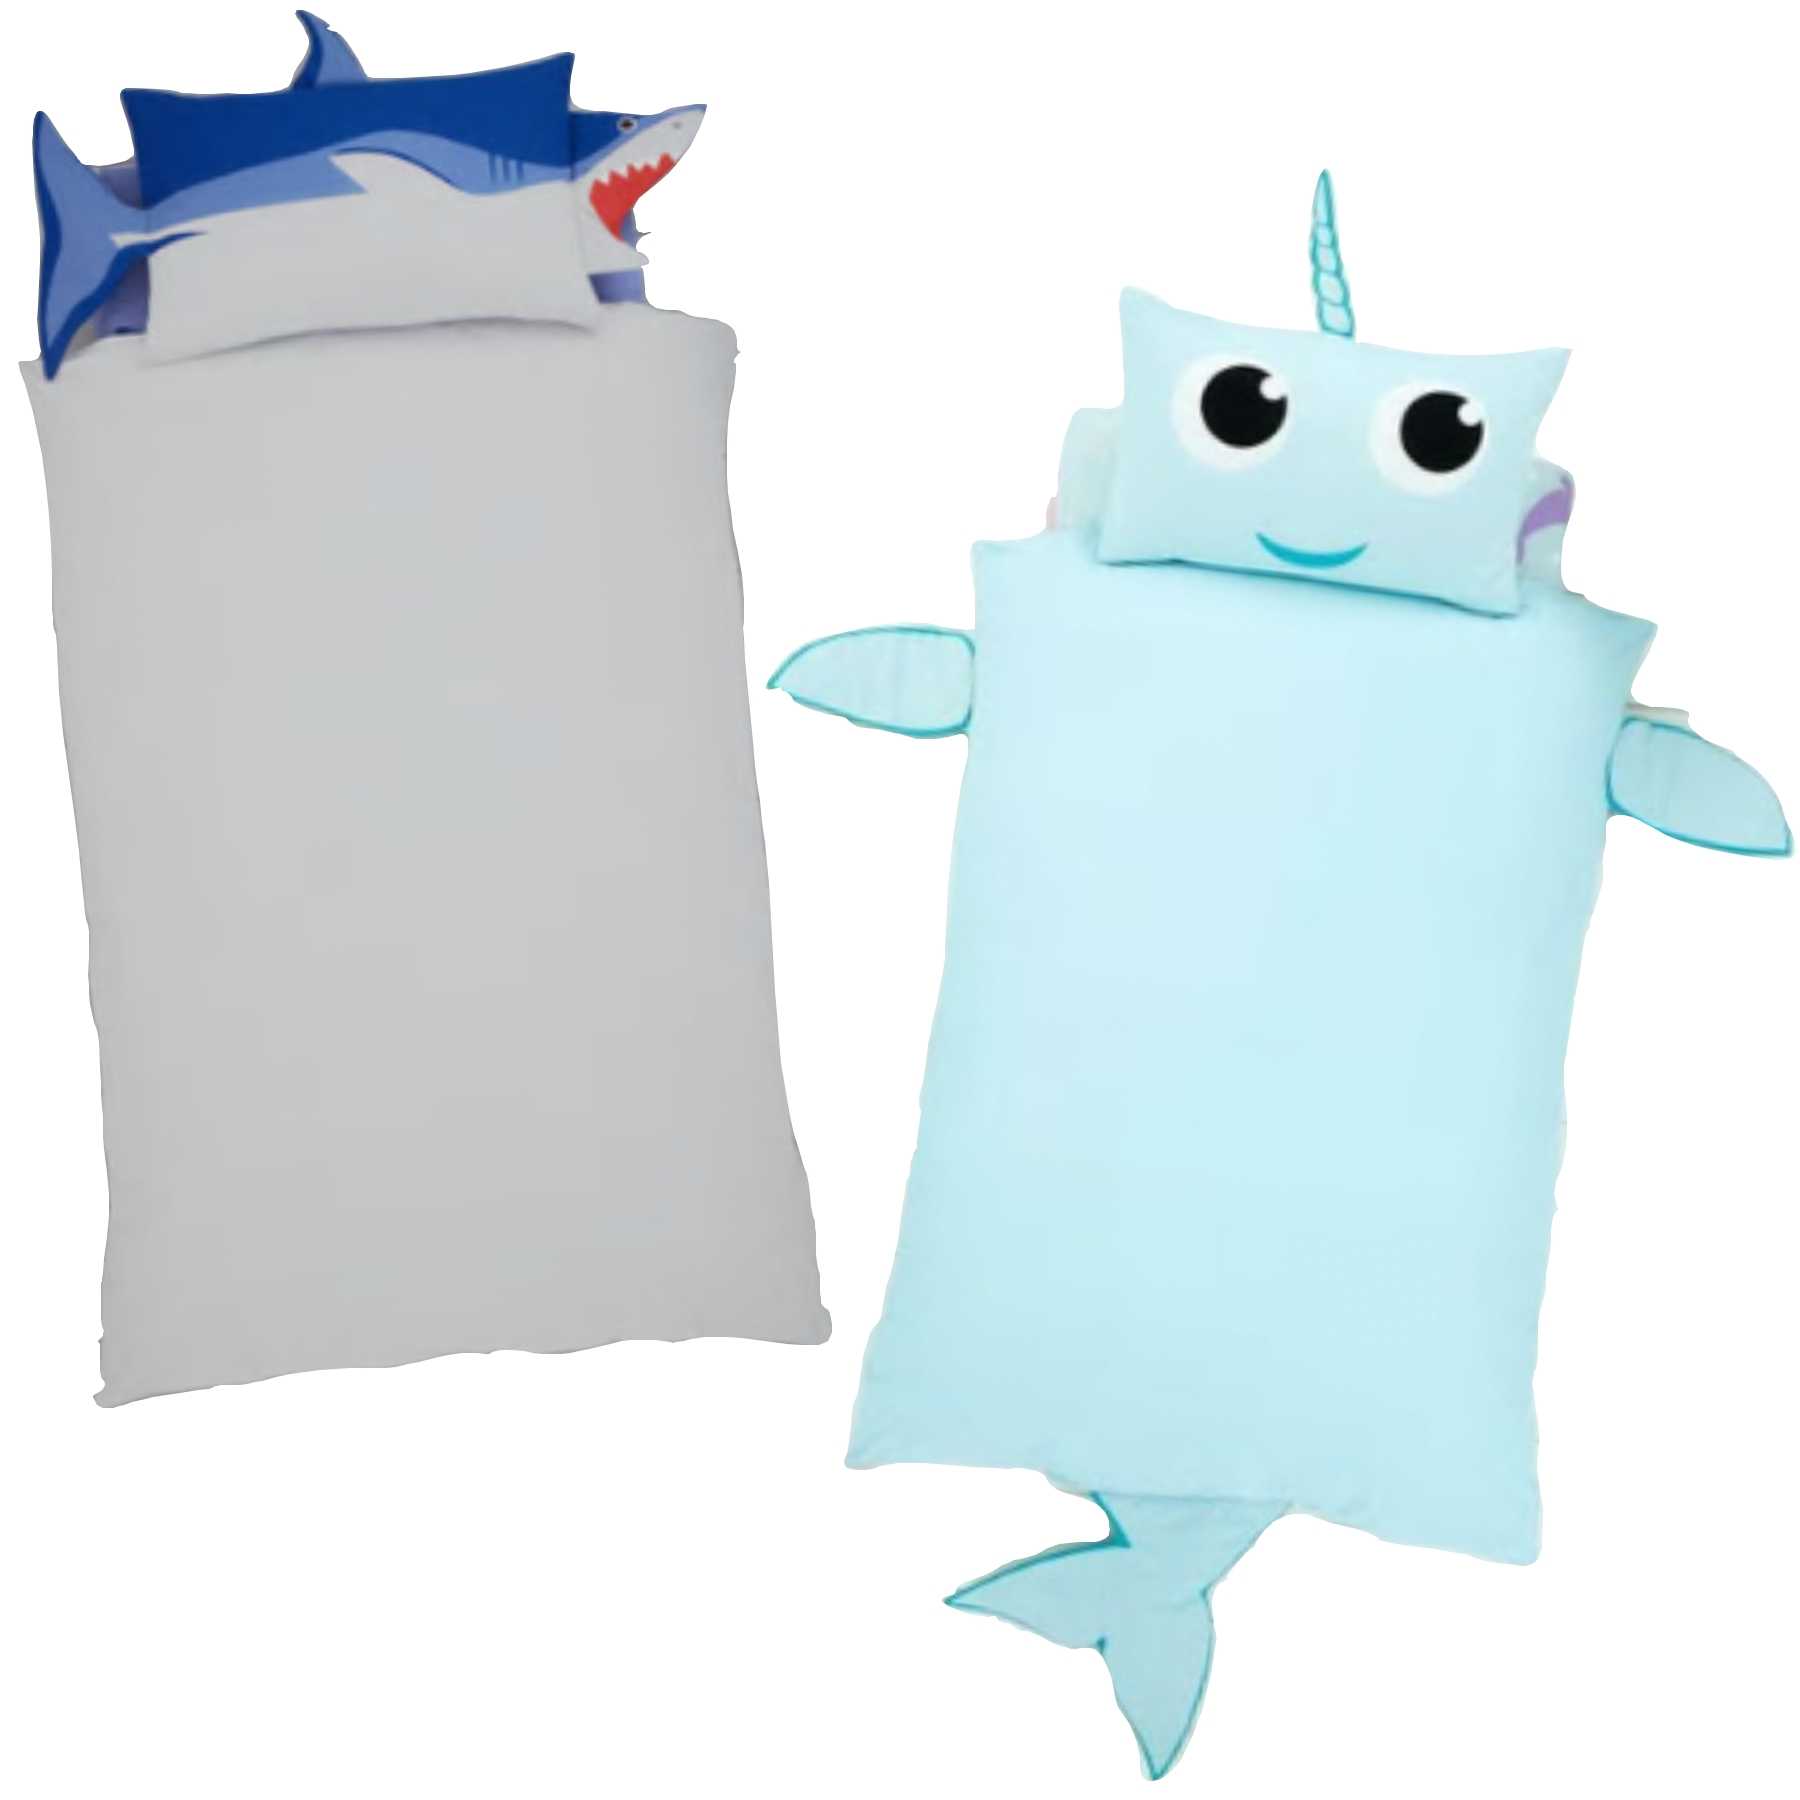 Shark shaped single bedding and Narwhal shaped single bedding